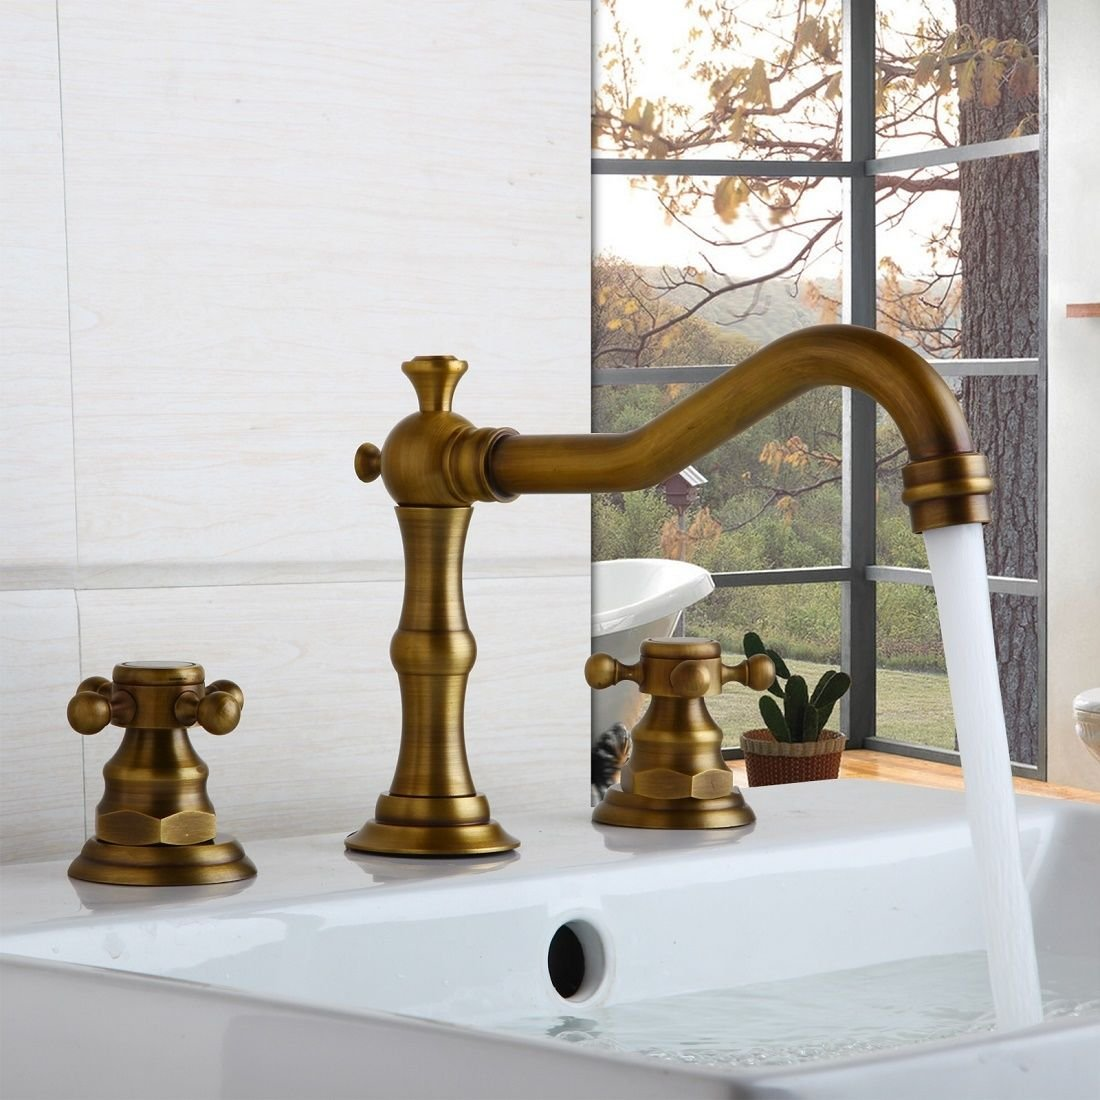 Two Handle Widespread Bathroom Vanity Sink Lavatory Faucet  Antique Brass  Ys6621   Touch On Bathroom Sink Faucets   Amazon com. Two Handle Widespread Bathroom Vanity Sink Lavatory Faucet